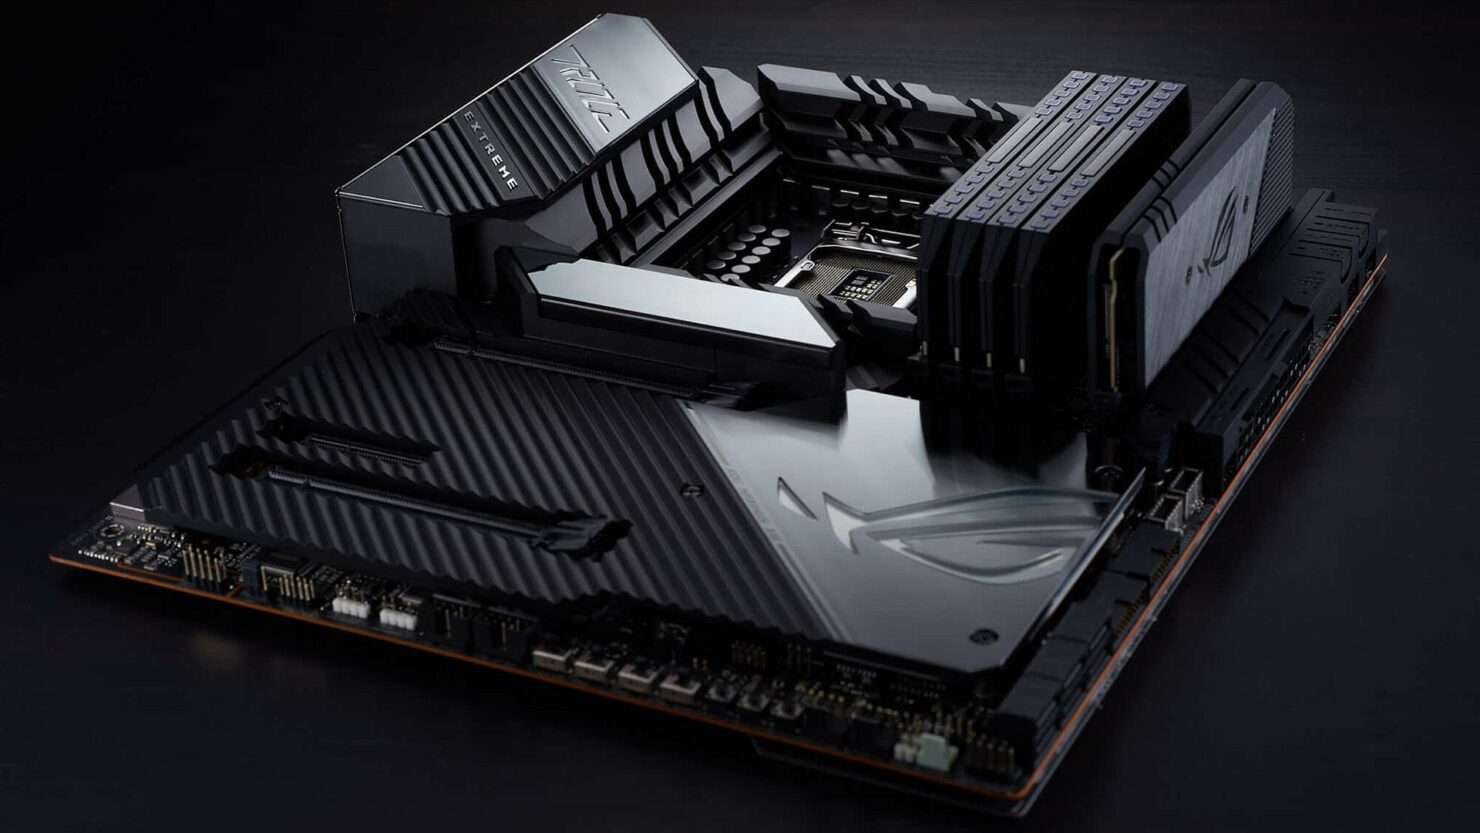 Intel Core i9-12900 Alder Lake CPU Tested on ASUS's Flagship ROG Maximus Z690 Extreme Motherboard